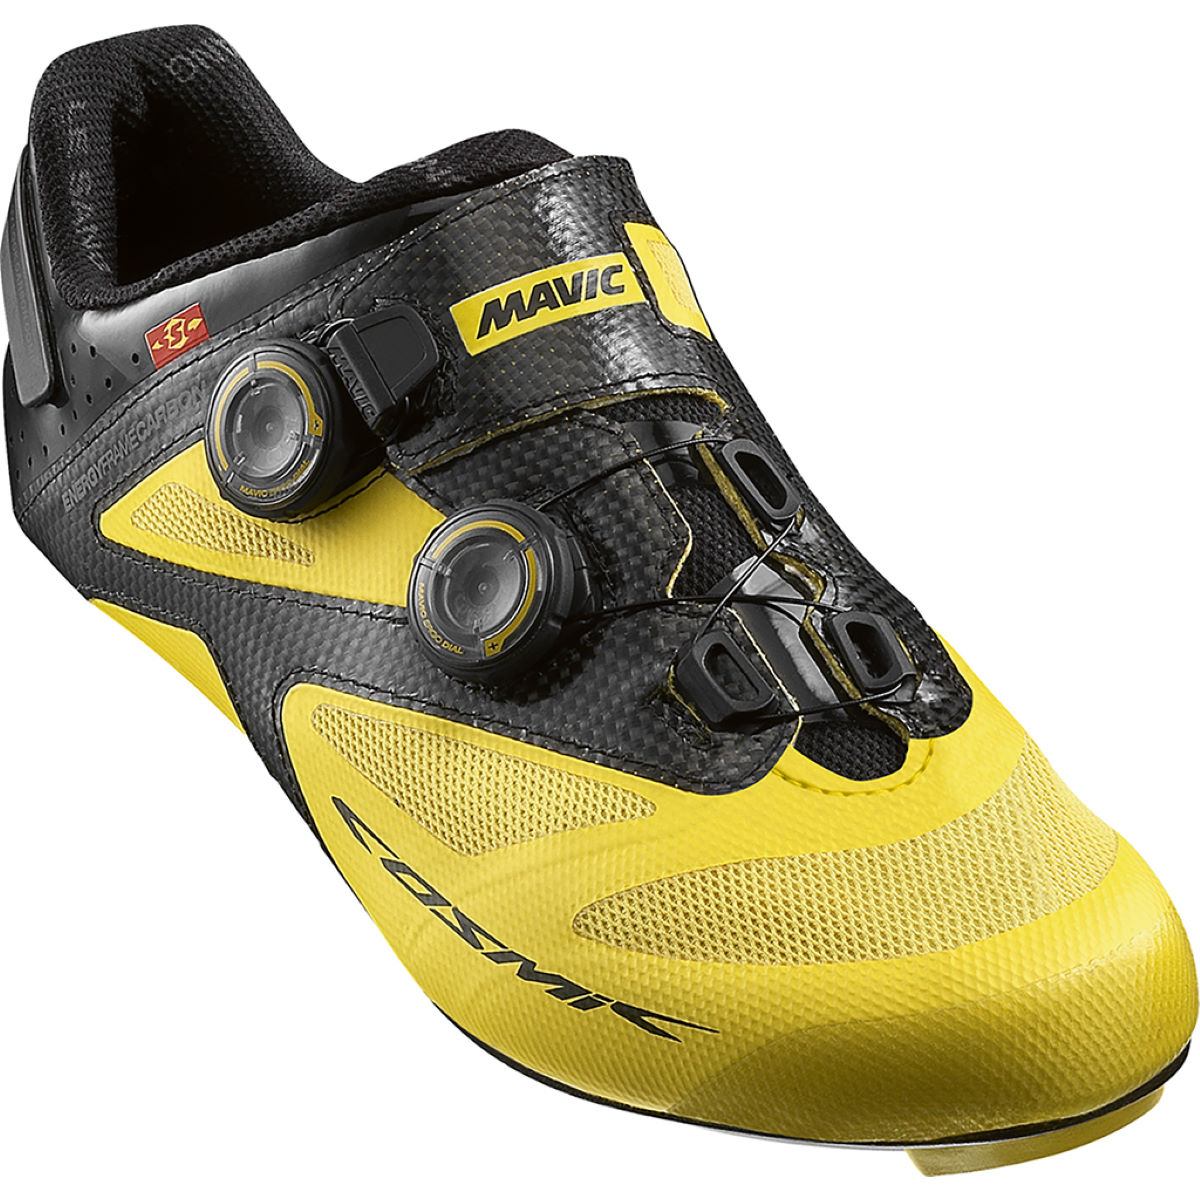 Chaussures Mavic Cosmic Ultimate Maxi Fit - 7 UK Jaune